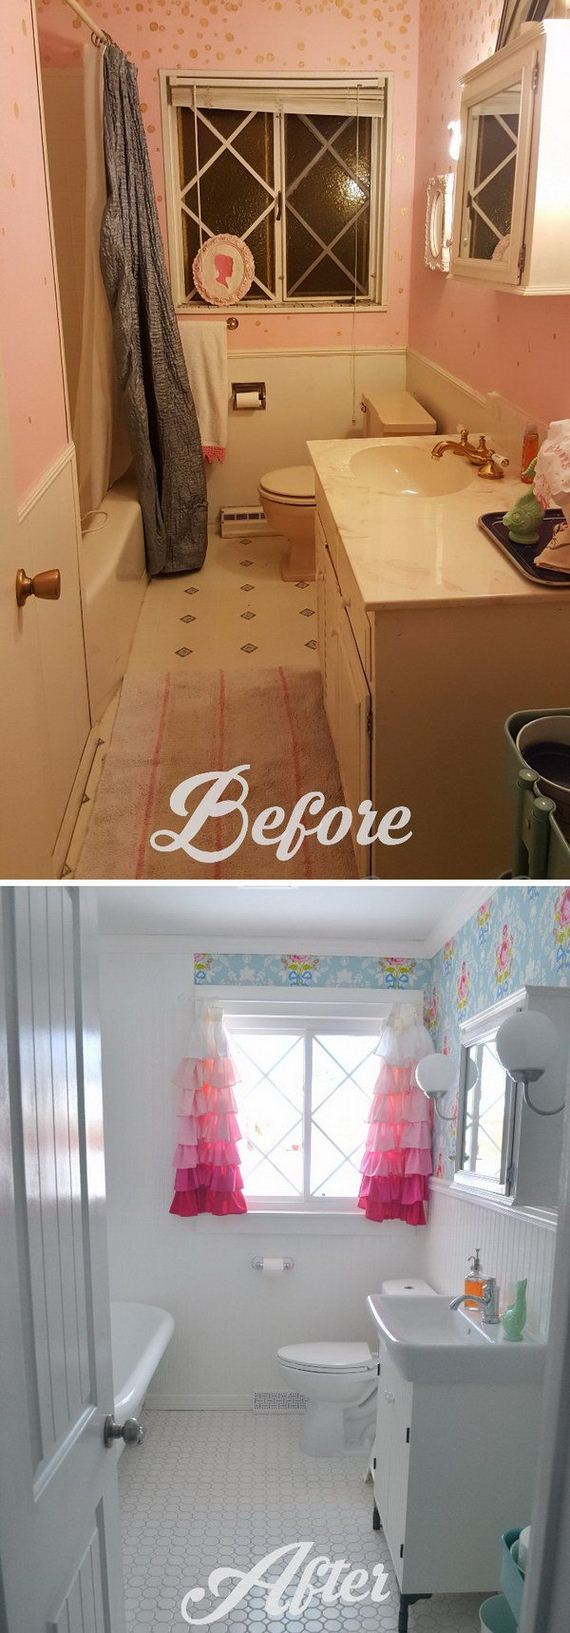 34-awesome-bathroom-makeovers